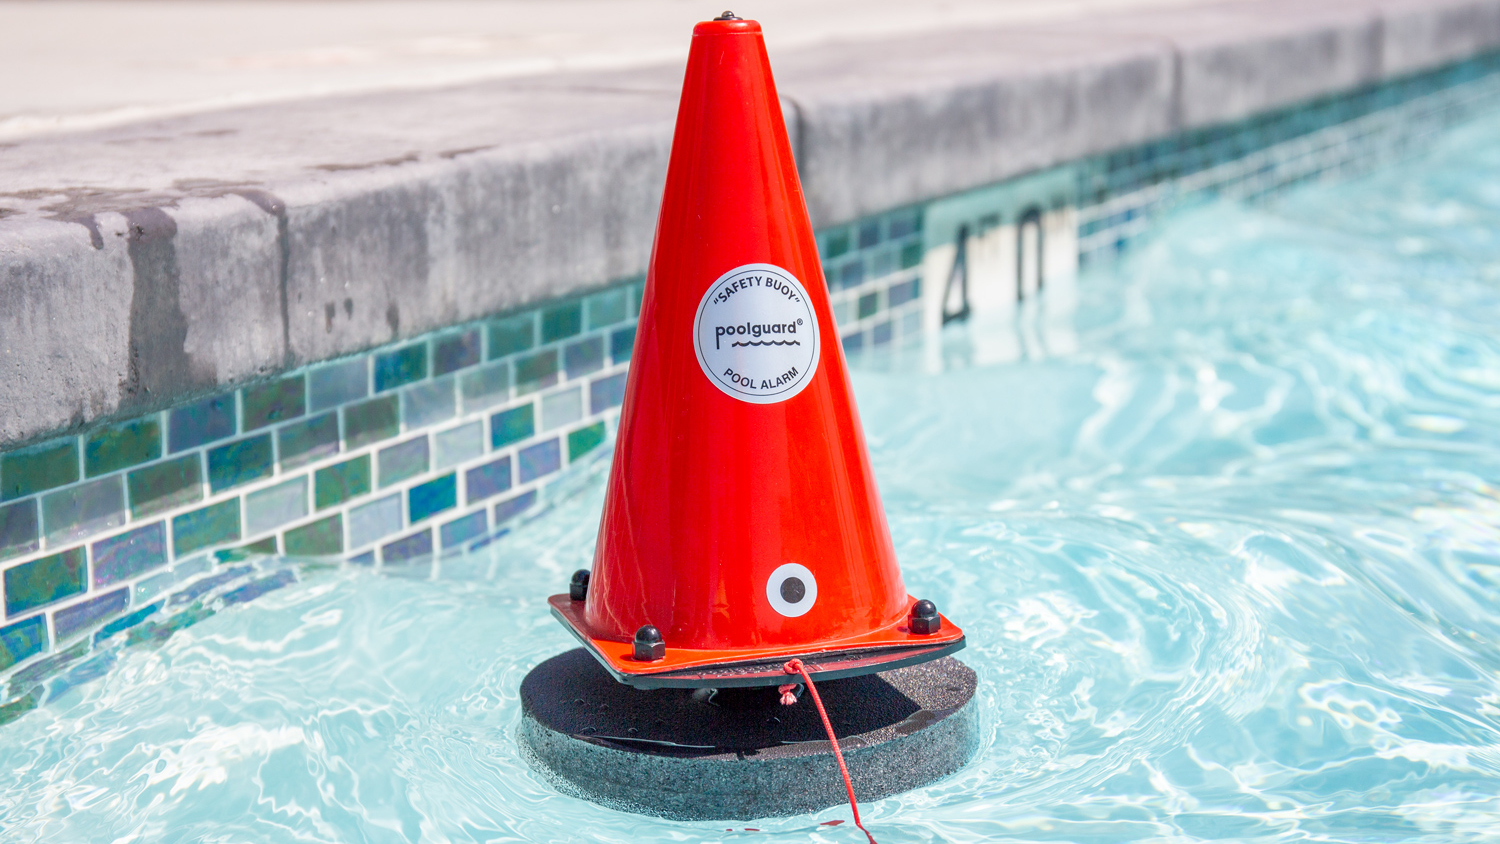 Best Pool Alarms of 2019 - Safety Sensors for Swimming Pools ...